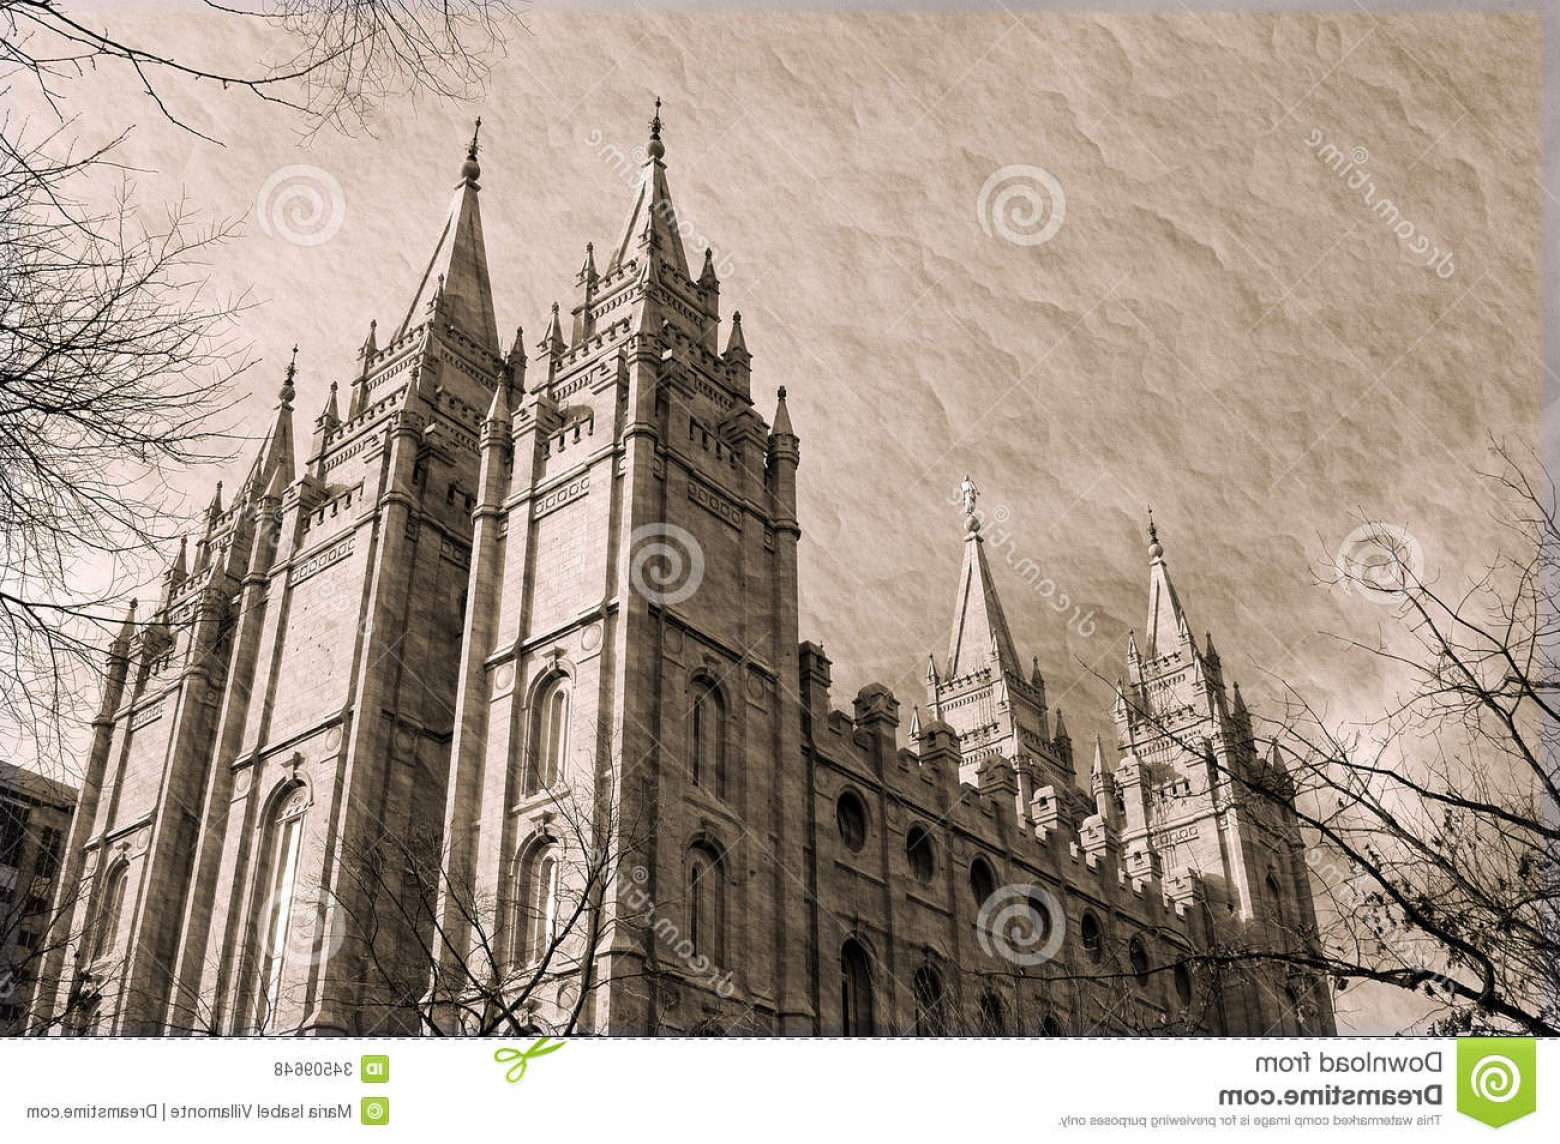 Salt Lake City Temple Vector: Royalty Free Stock Photos Salt Lake City Temple Sepia Square Downtown Built Settlers Mormon Take Years To Build Image